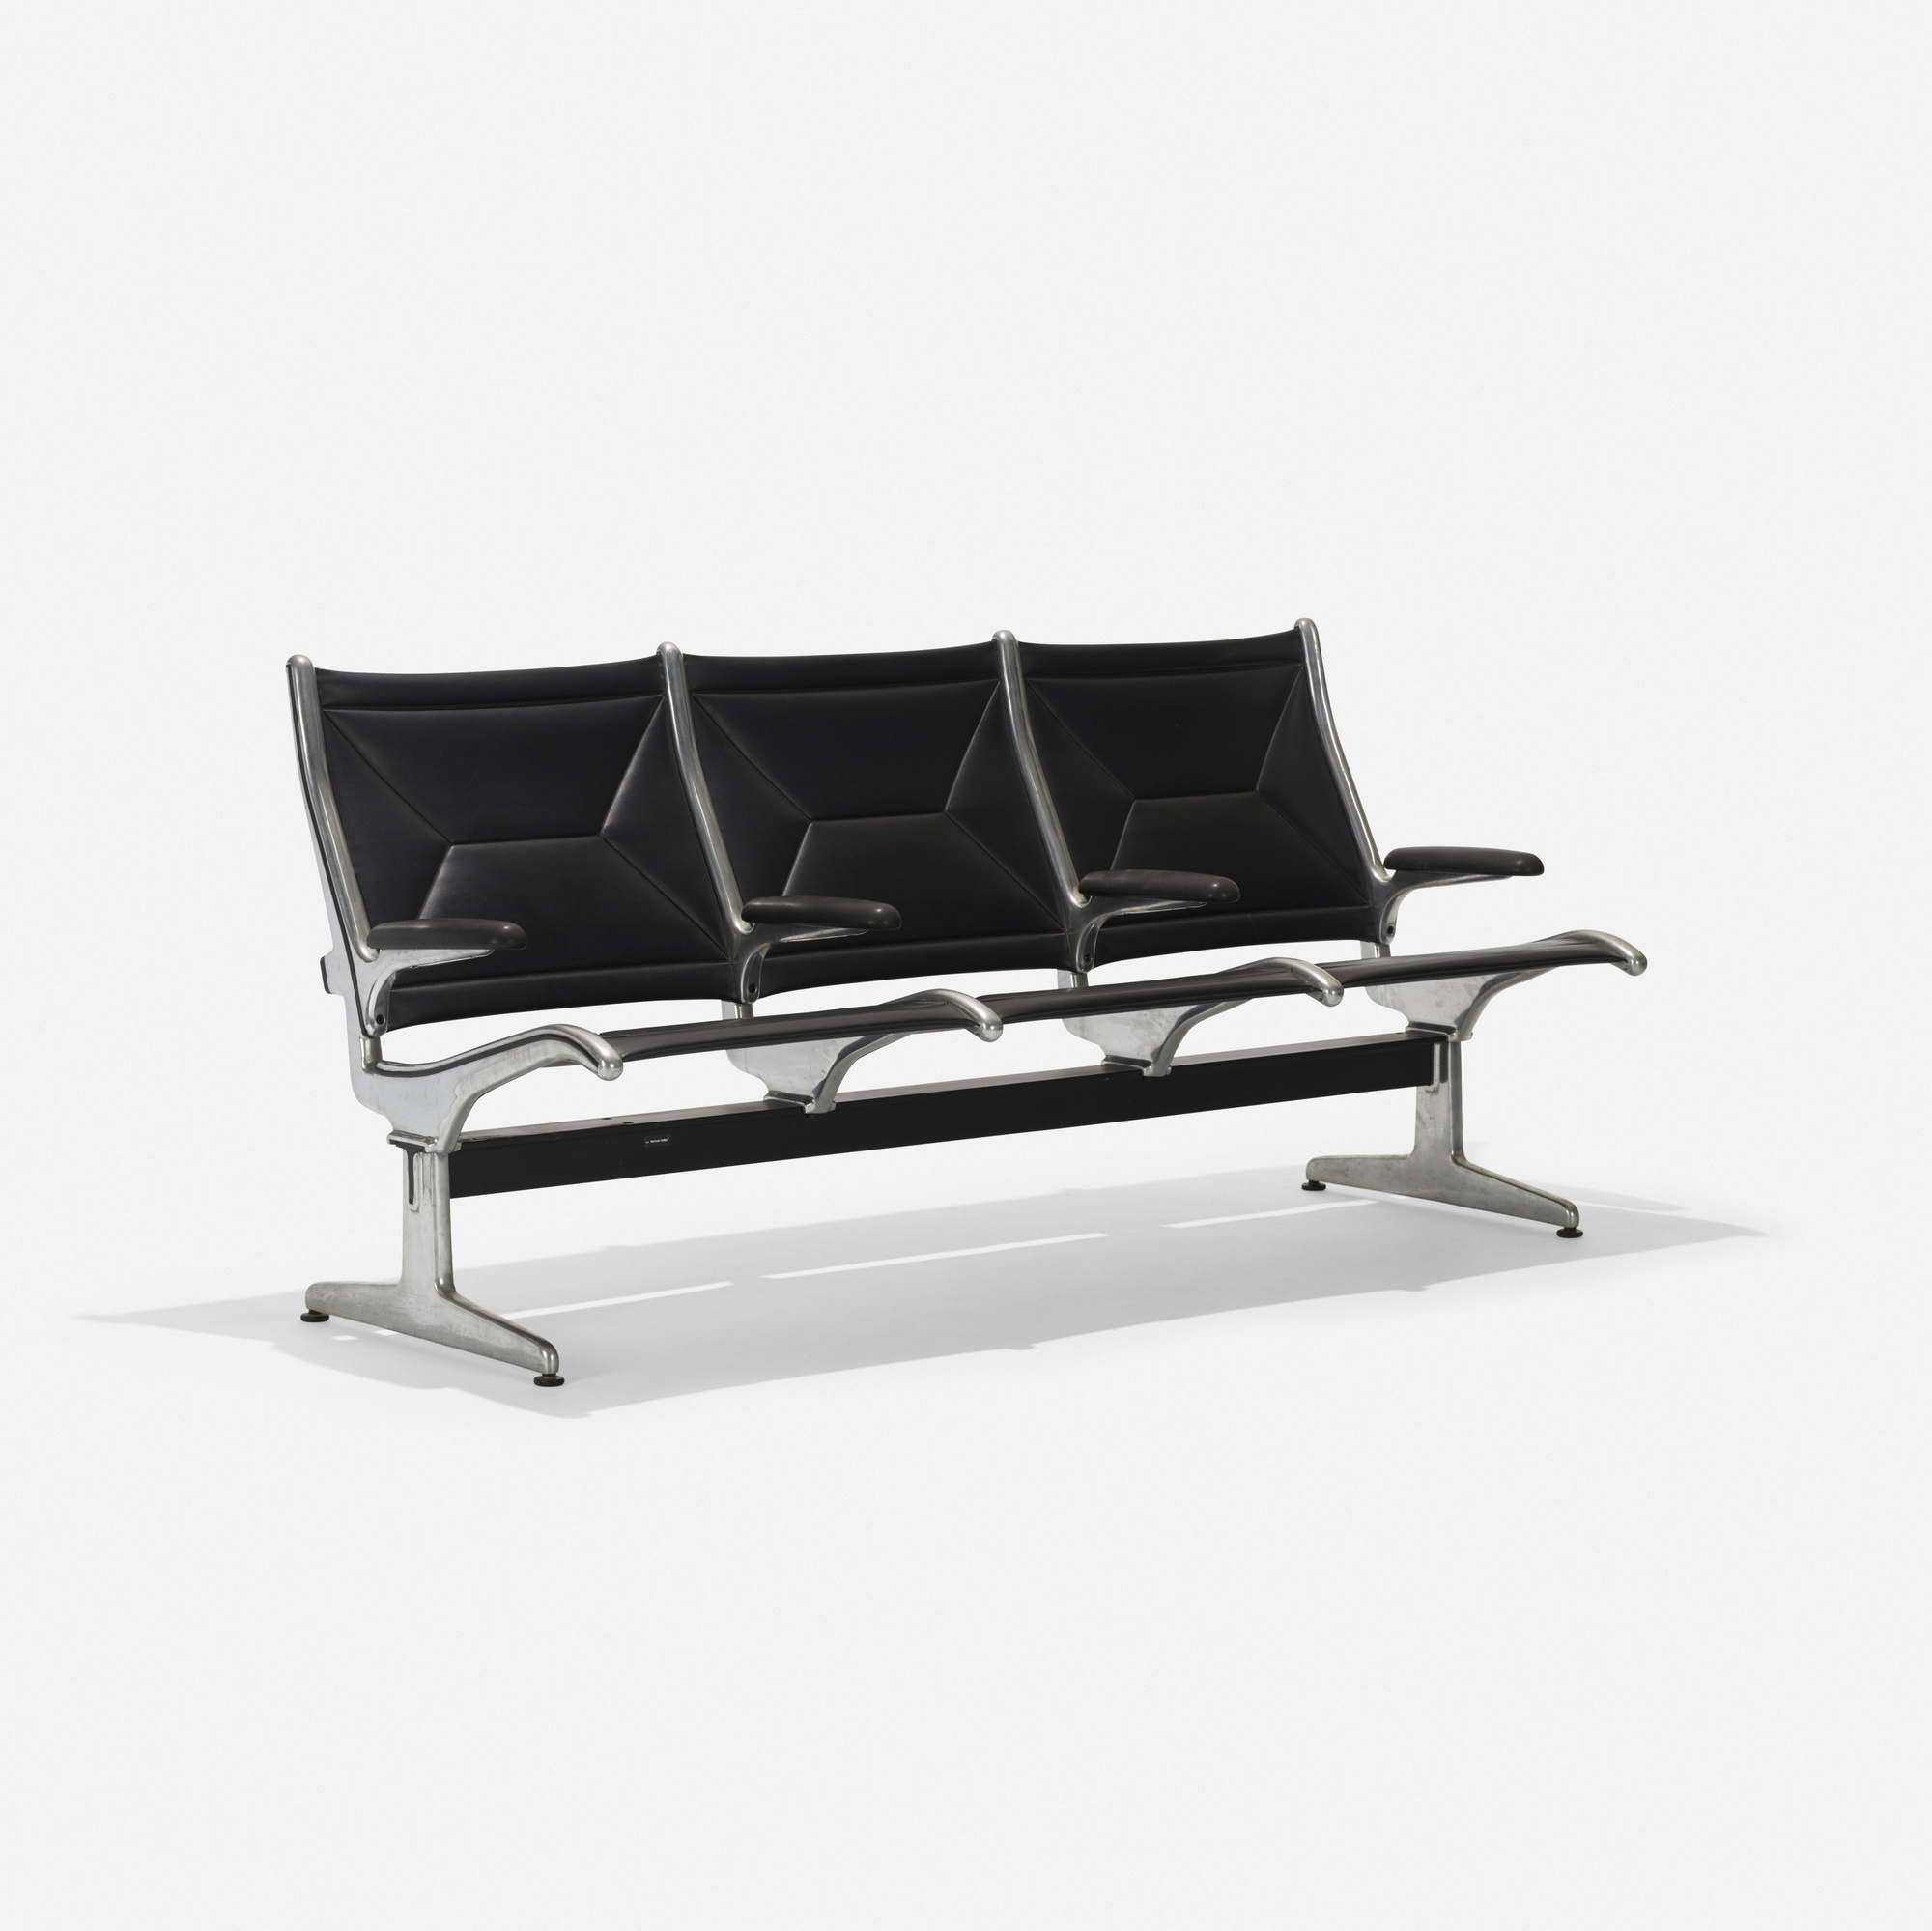 187: Charles and Ray Eames / Tandem Sling seating (1 of 3)